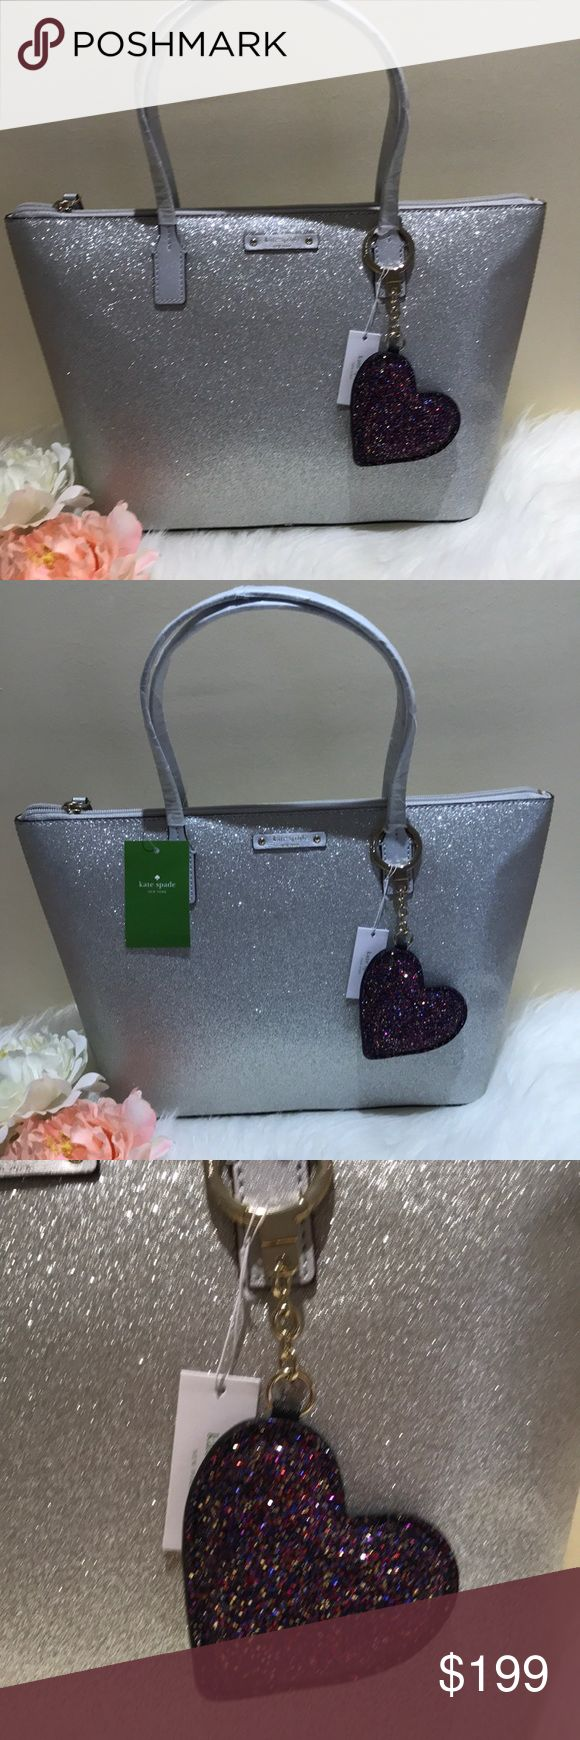 Kate Spade ♠️ silver holiday tote, bag charm nwt Stunning silver tote with zippered top and leather handles and bottom will turn heads for the holidays, comes with a matching sparkle bag charm which retails $69 plus tax alone. kate spade Bags Totes